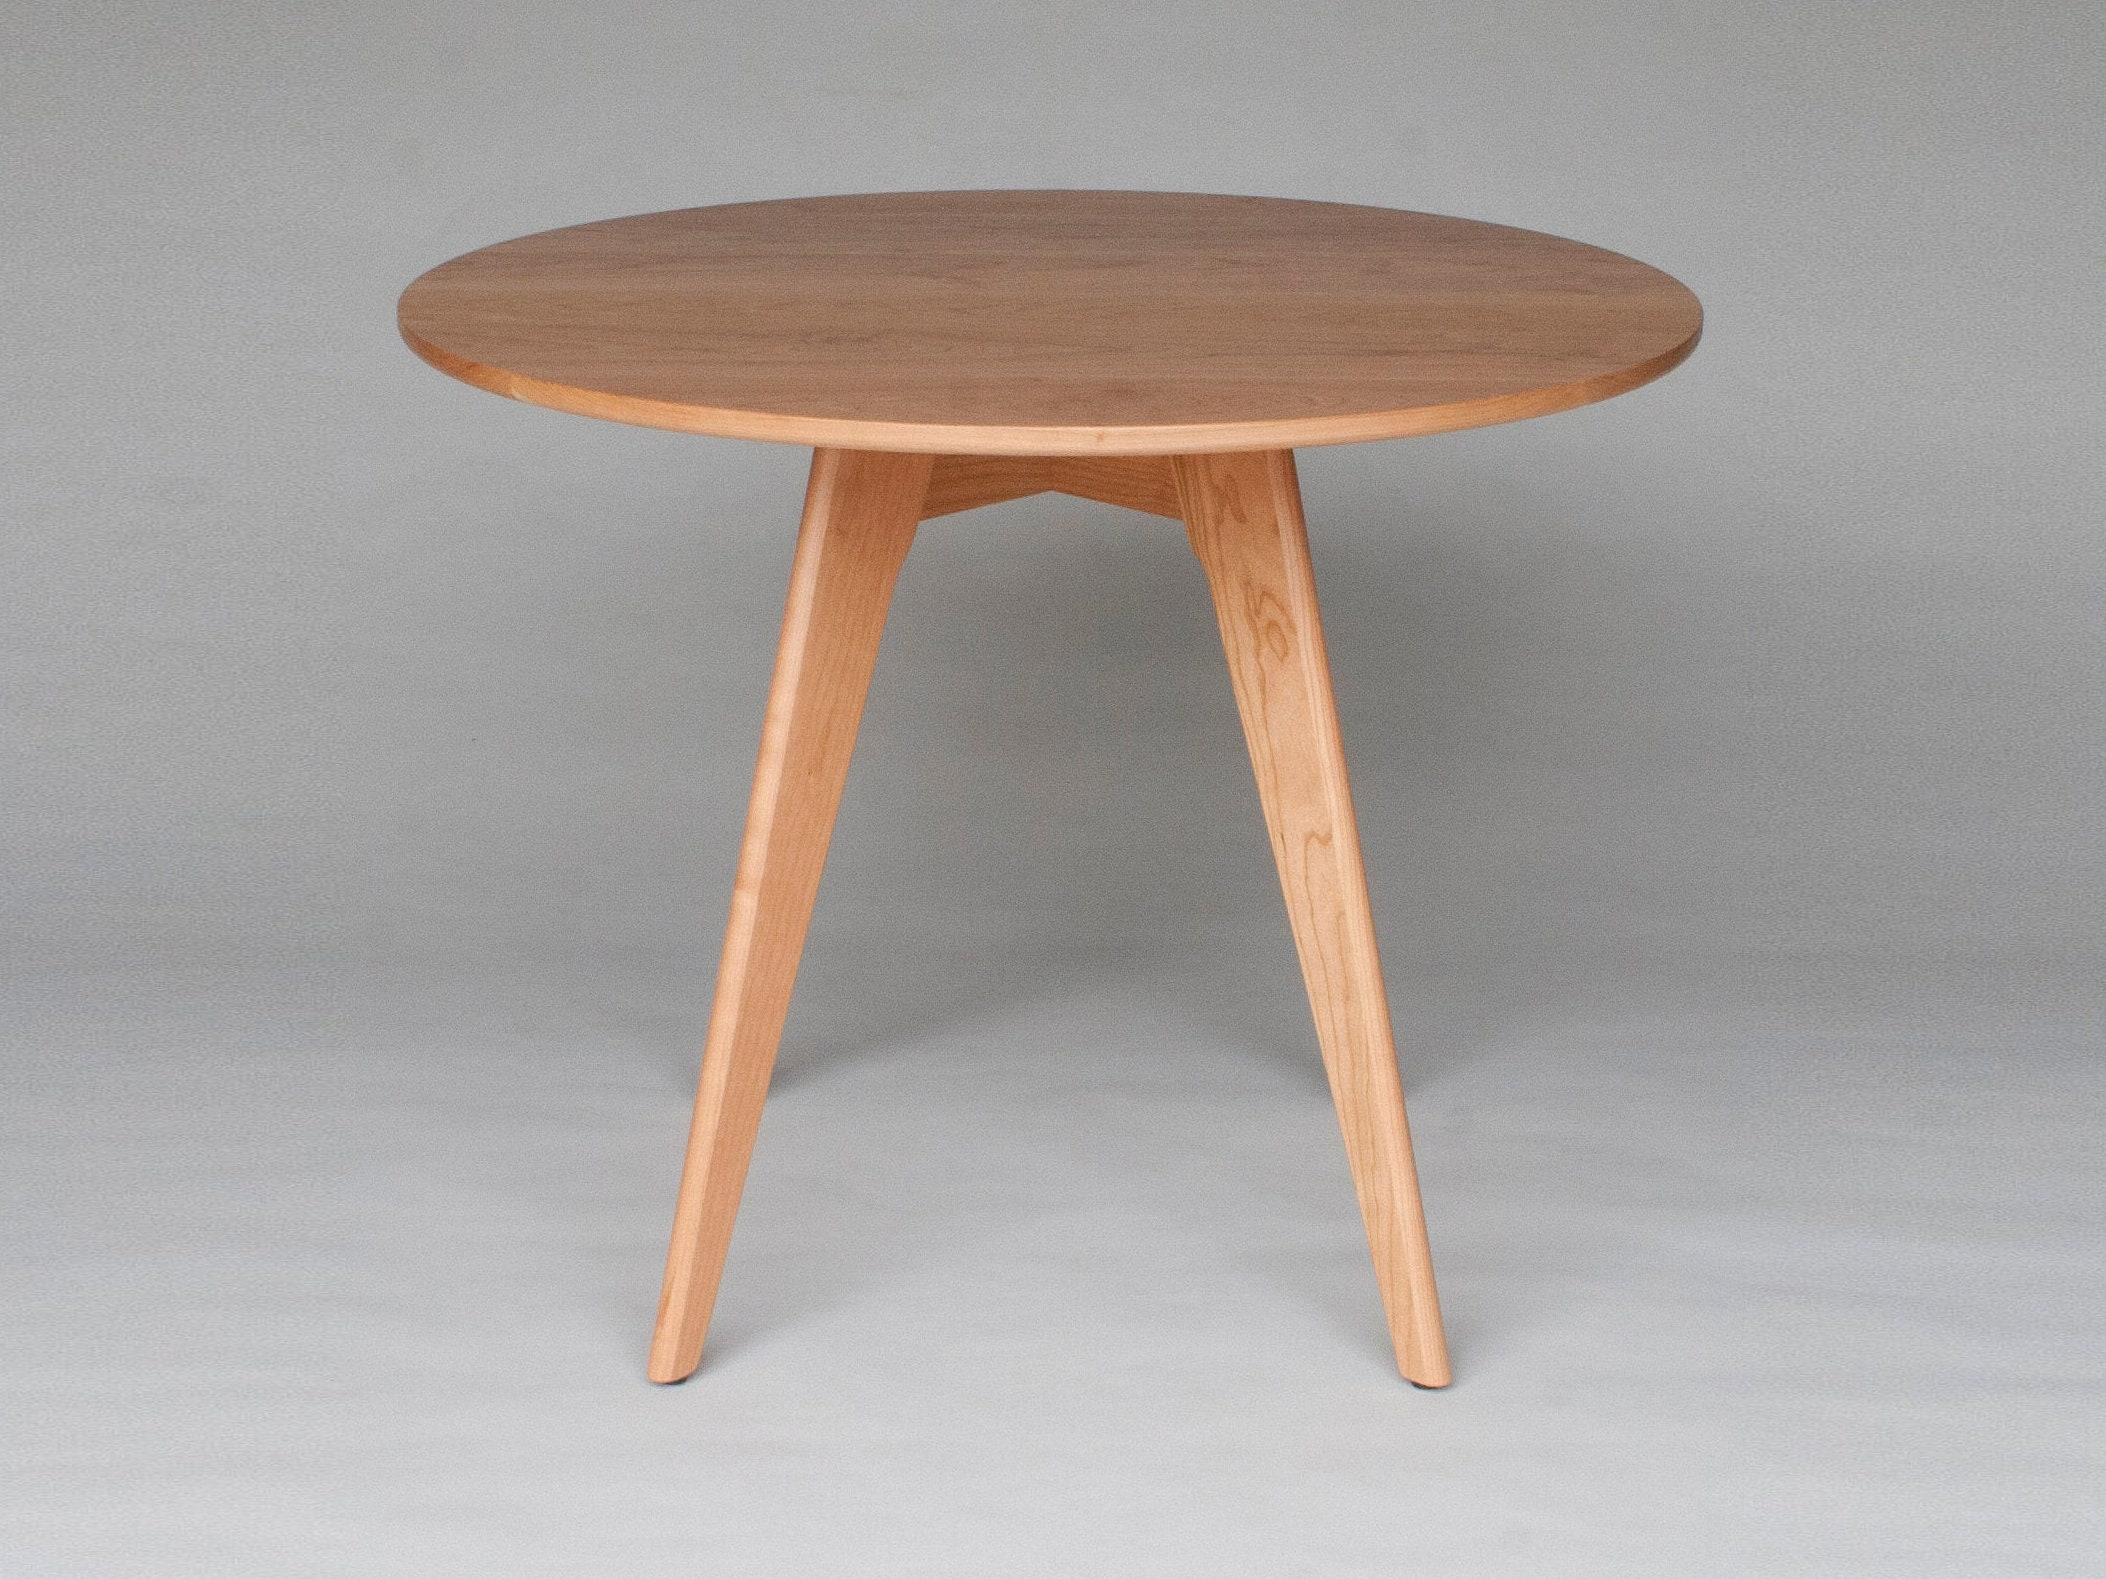 36 Inch Round Dining Table In Solid Natural Cherry Wood   Seats 4   Ships  Free